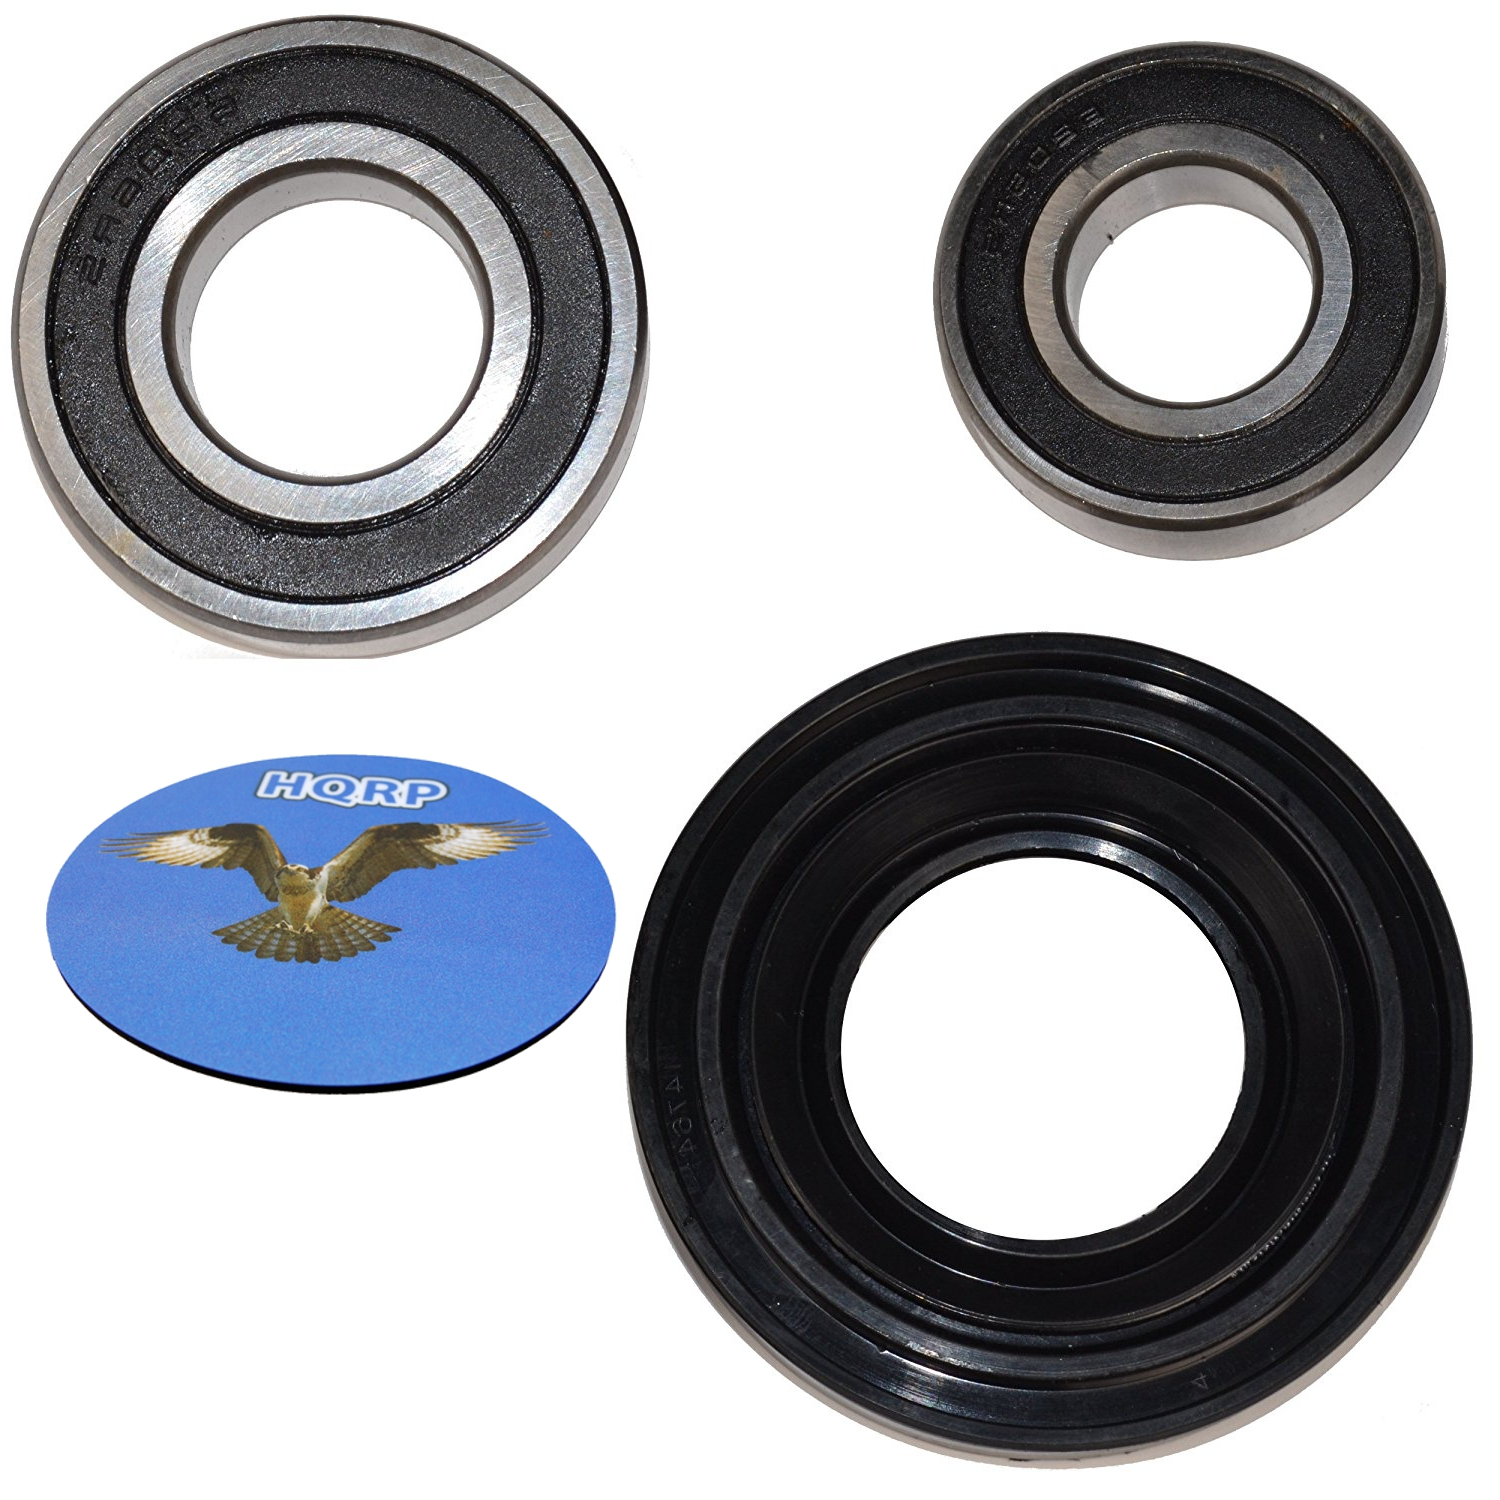 HQRP Bearing and Seal Kit for Whirlpool Duet Series Front Load Washer Tub